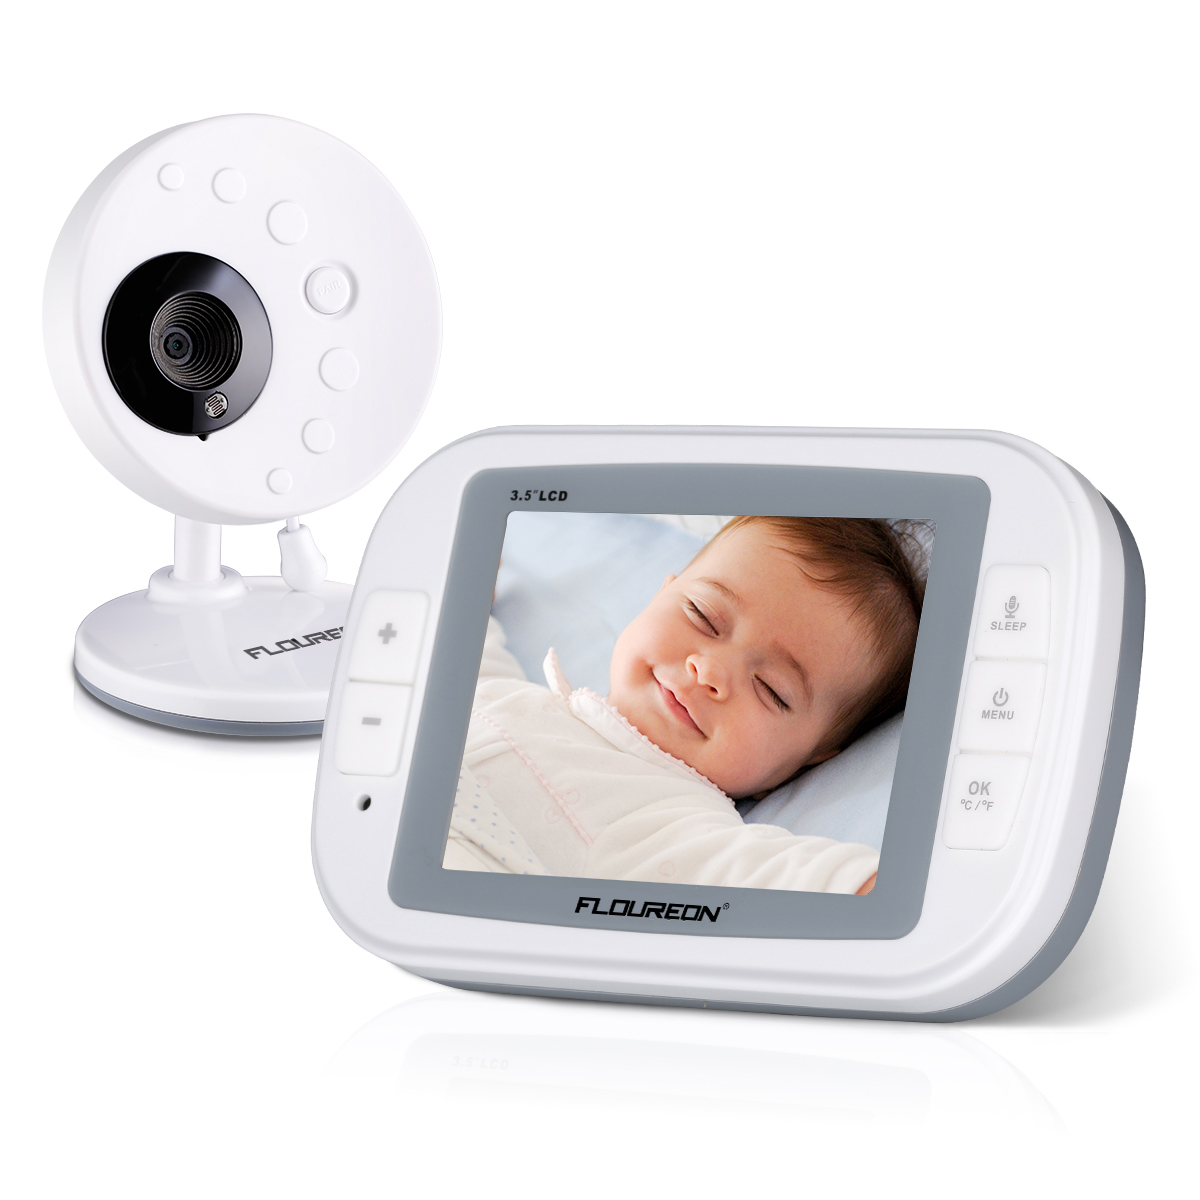 "FLOUREON 3.5"" LCD Display Digital Wireless Video Baby Monitor 2.4 GHz Security Camera with Temperature Display, Two Way Talk, Night Vision and Lullabies Radio"